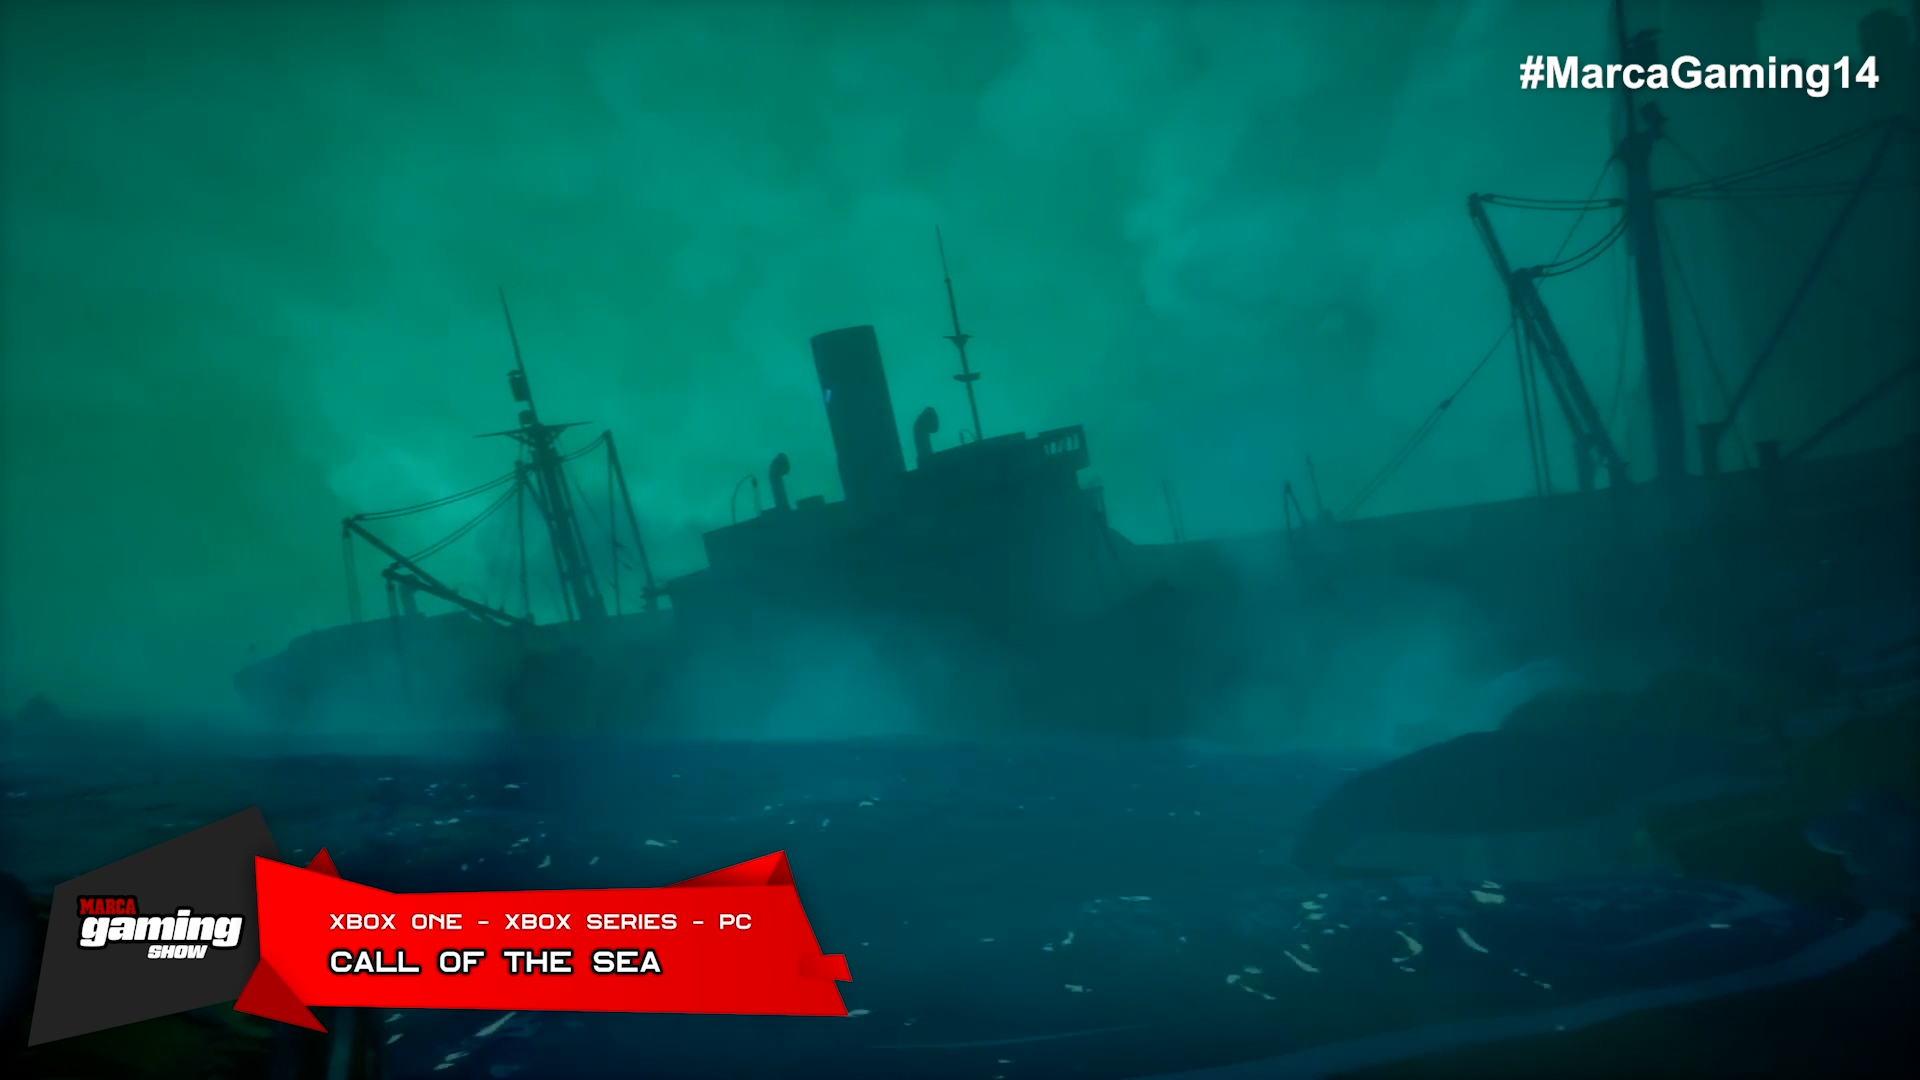 Call of the Sea (PC - XBOX ONE - XBOX SERIES)